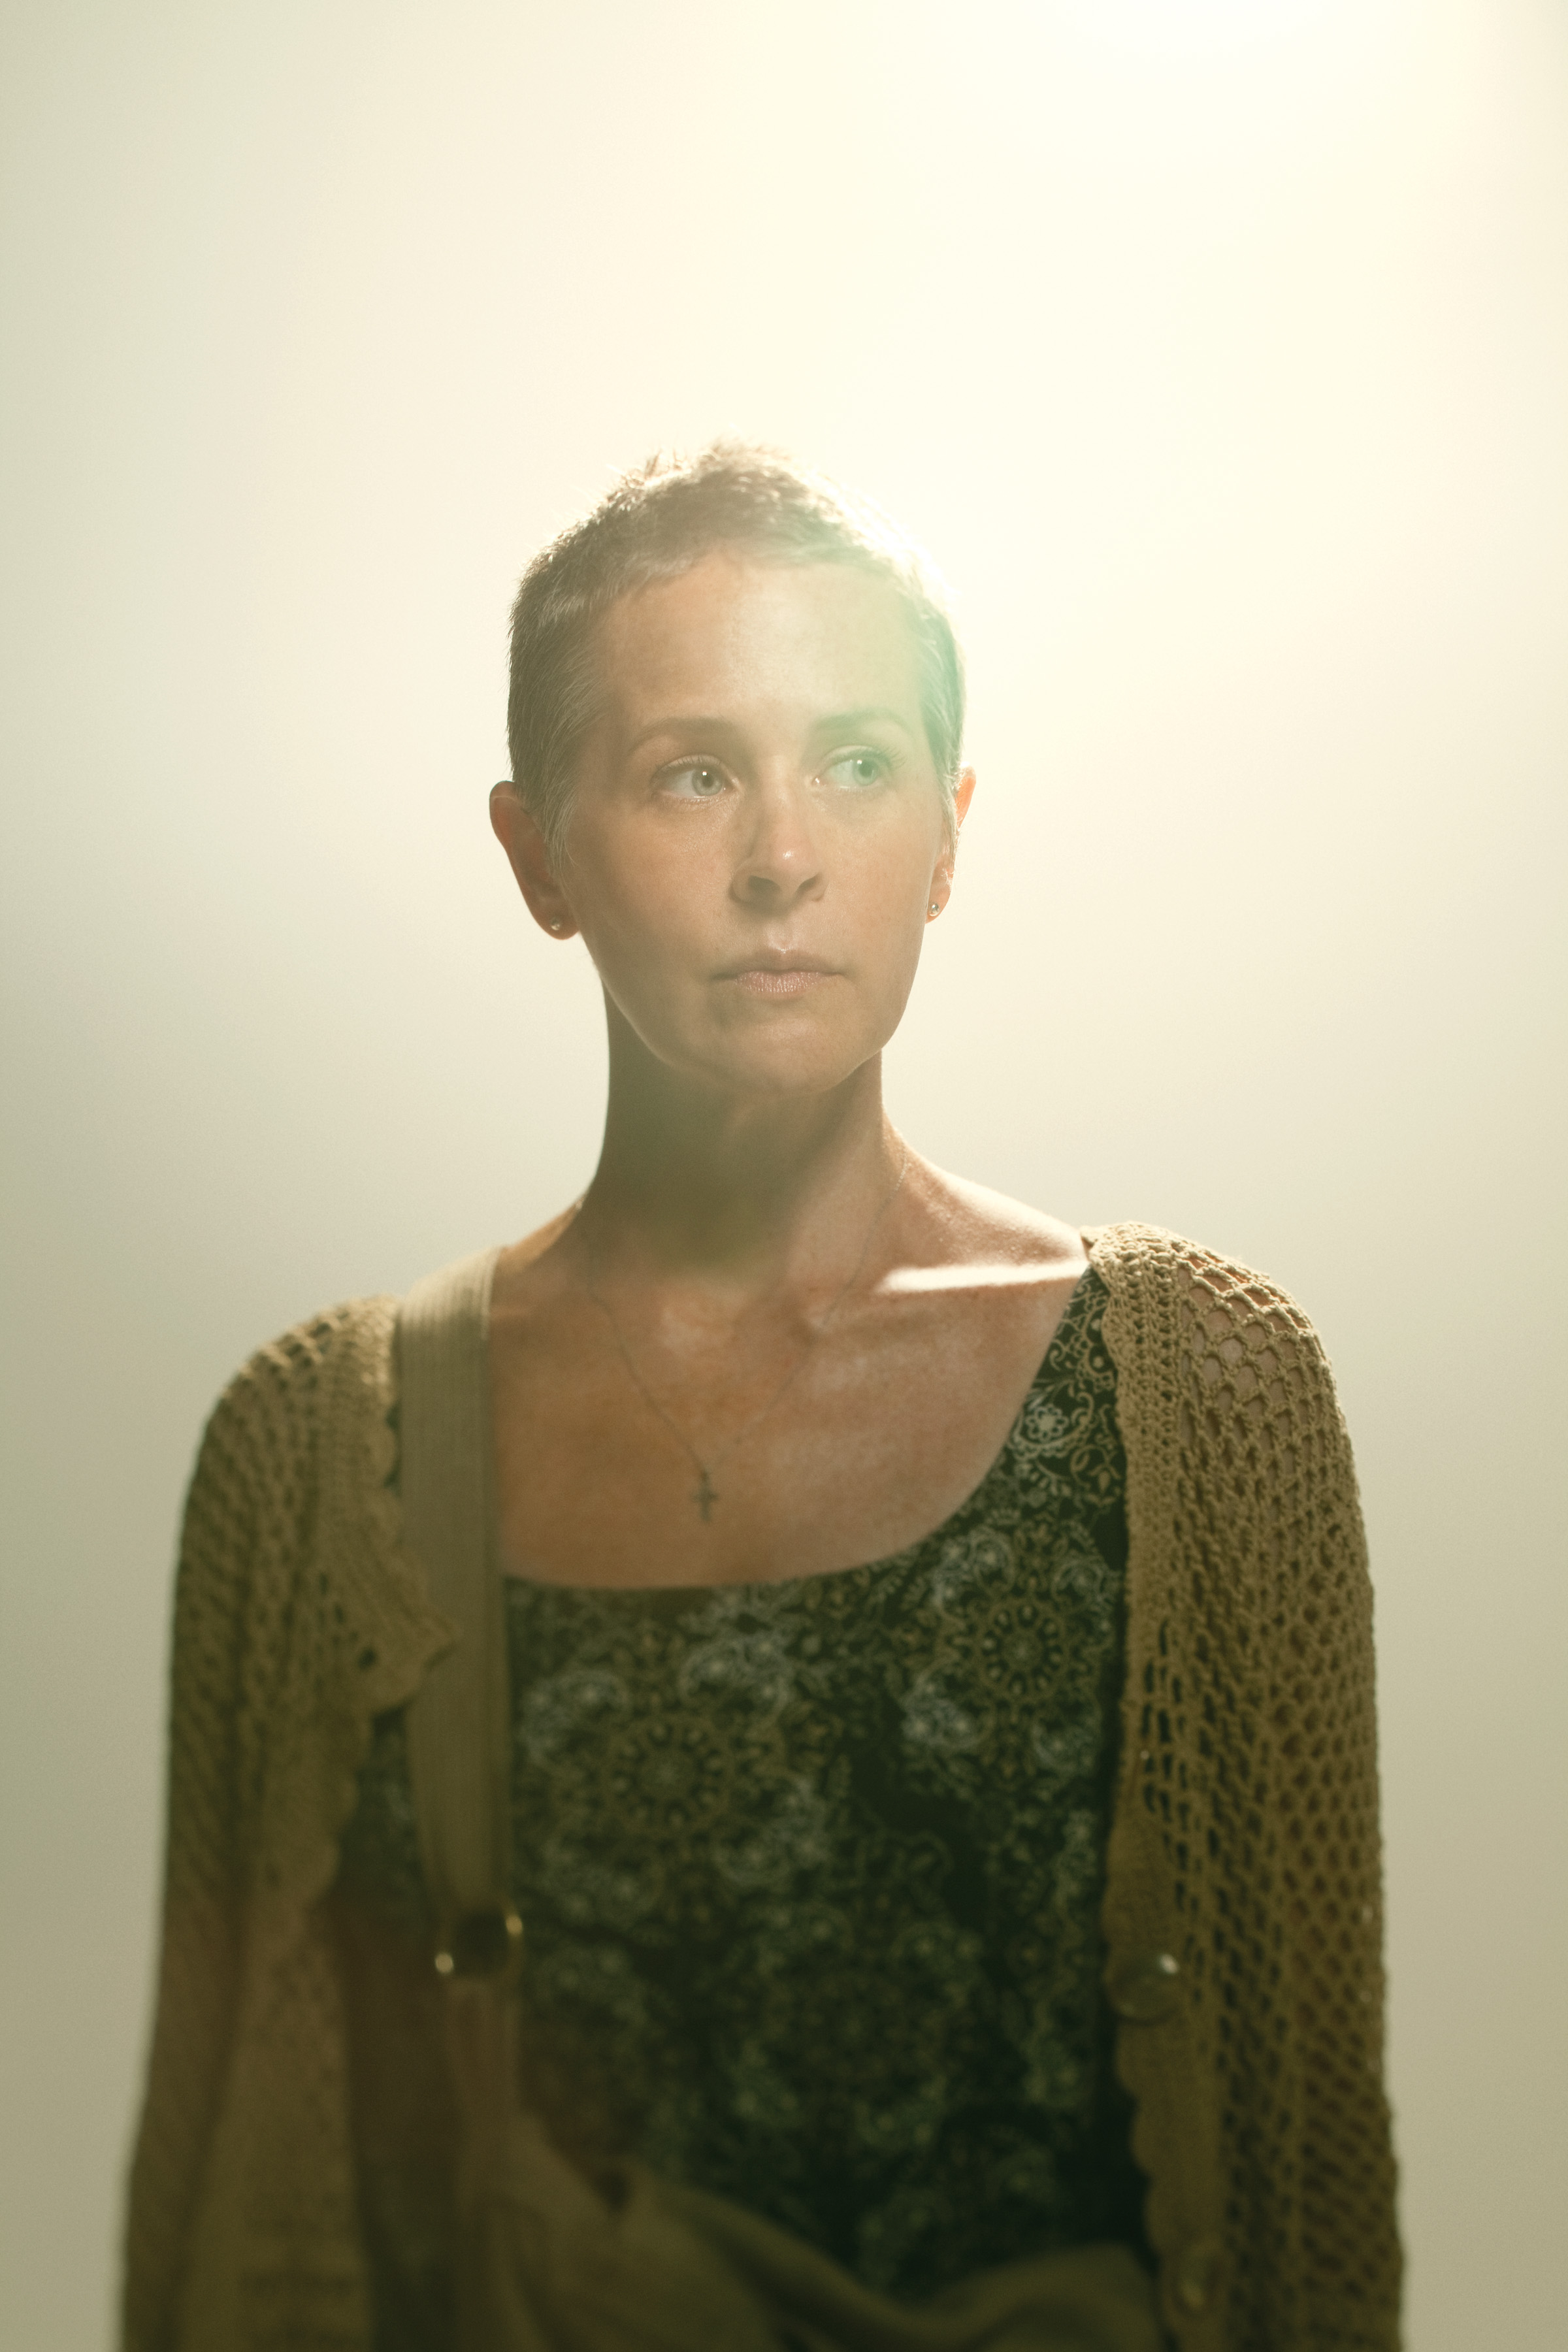 Personality ... MBTI Enneagram Carol ( The Walking Dead ) ... loading picture